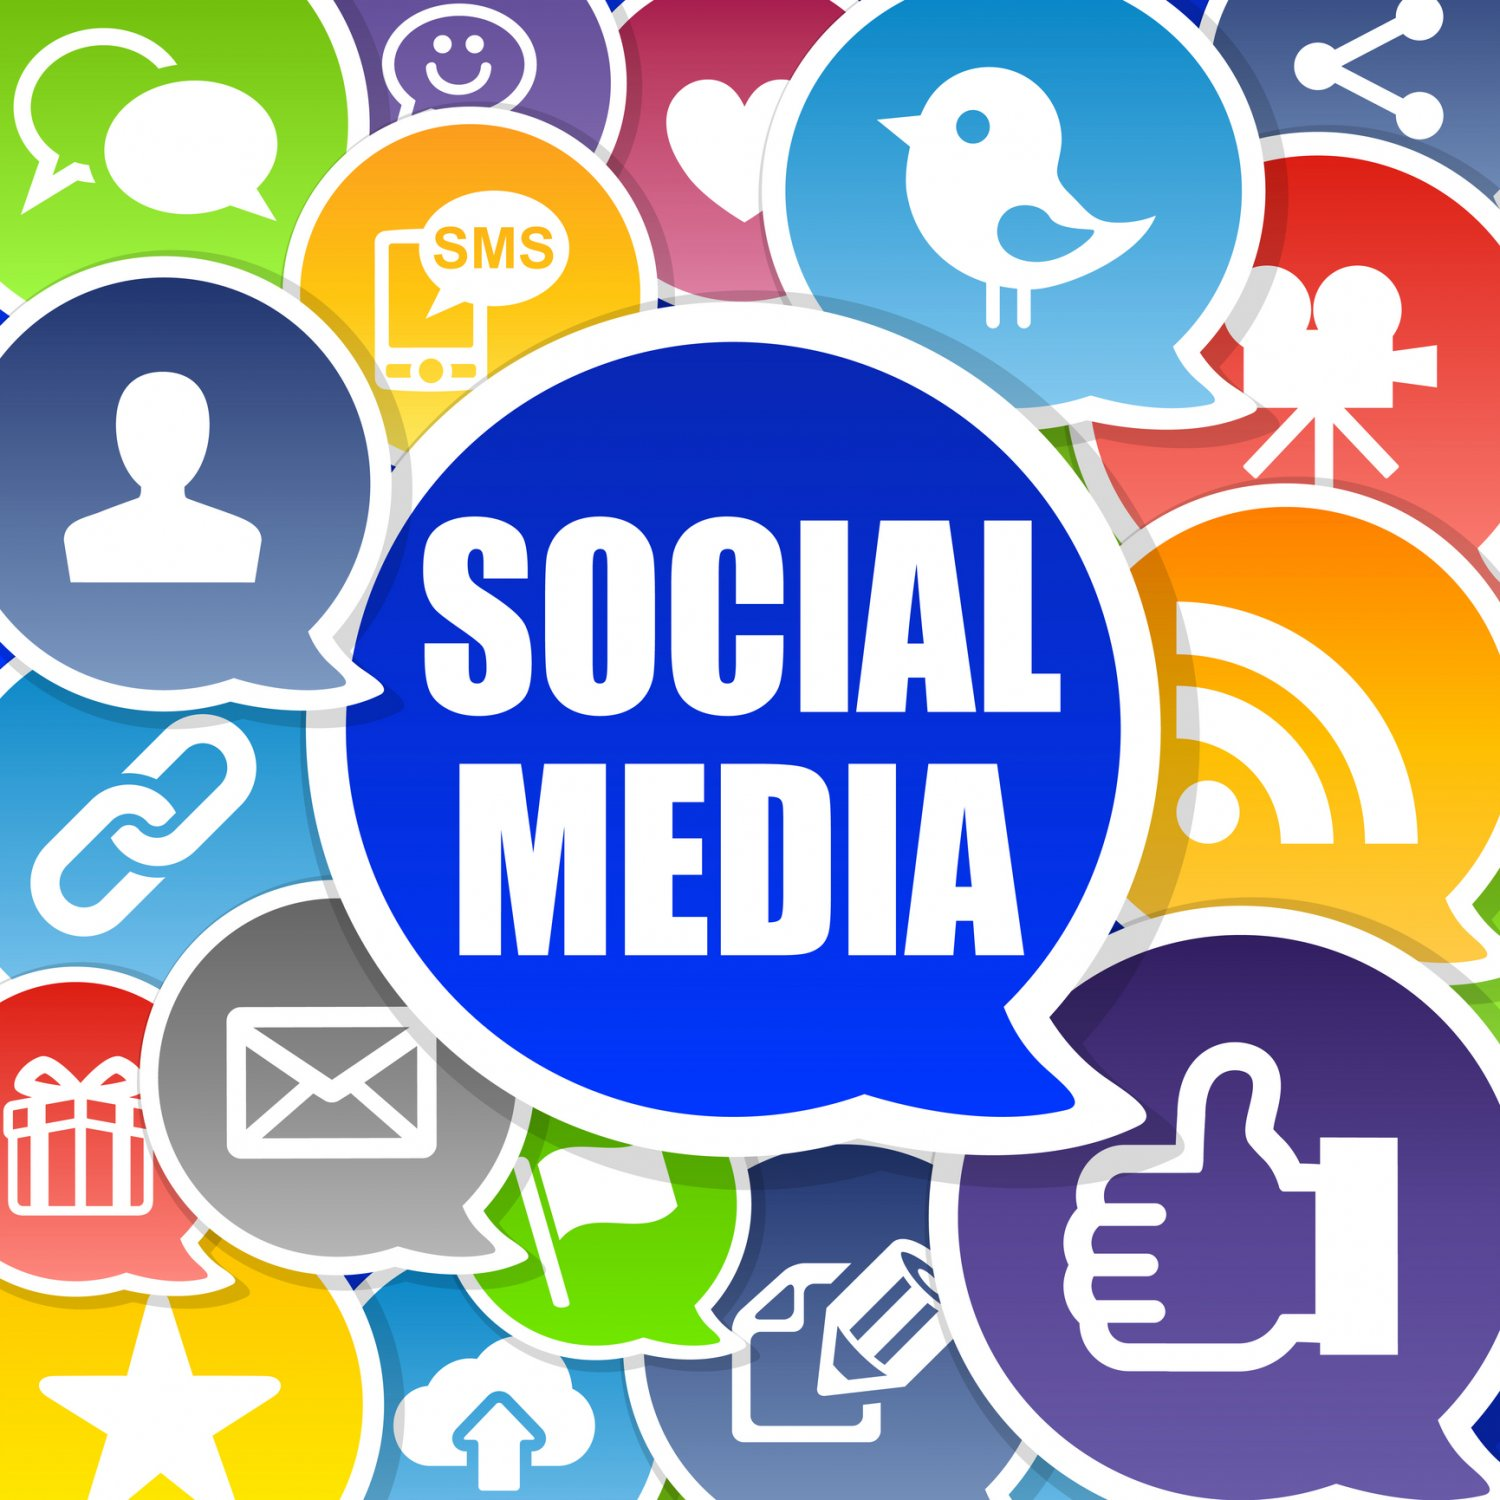 I'll Promote 4 items for 6 months on Social Media Outlets